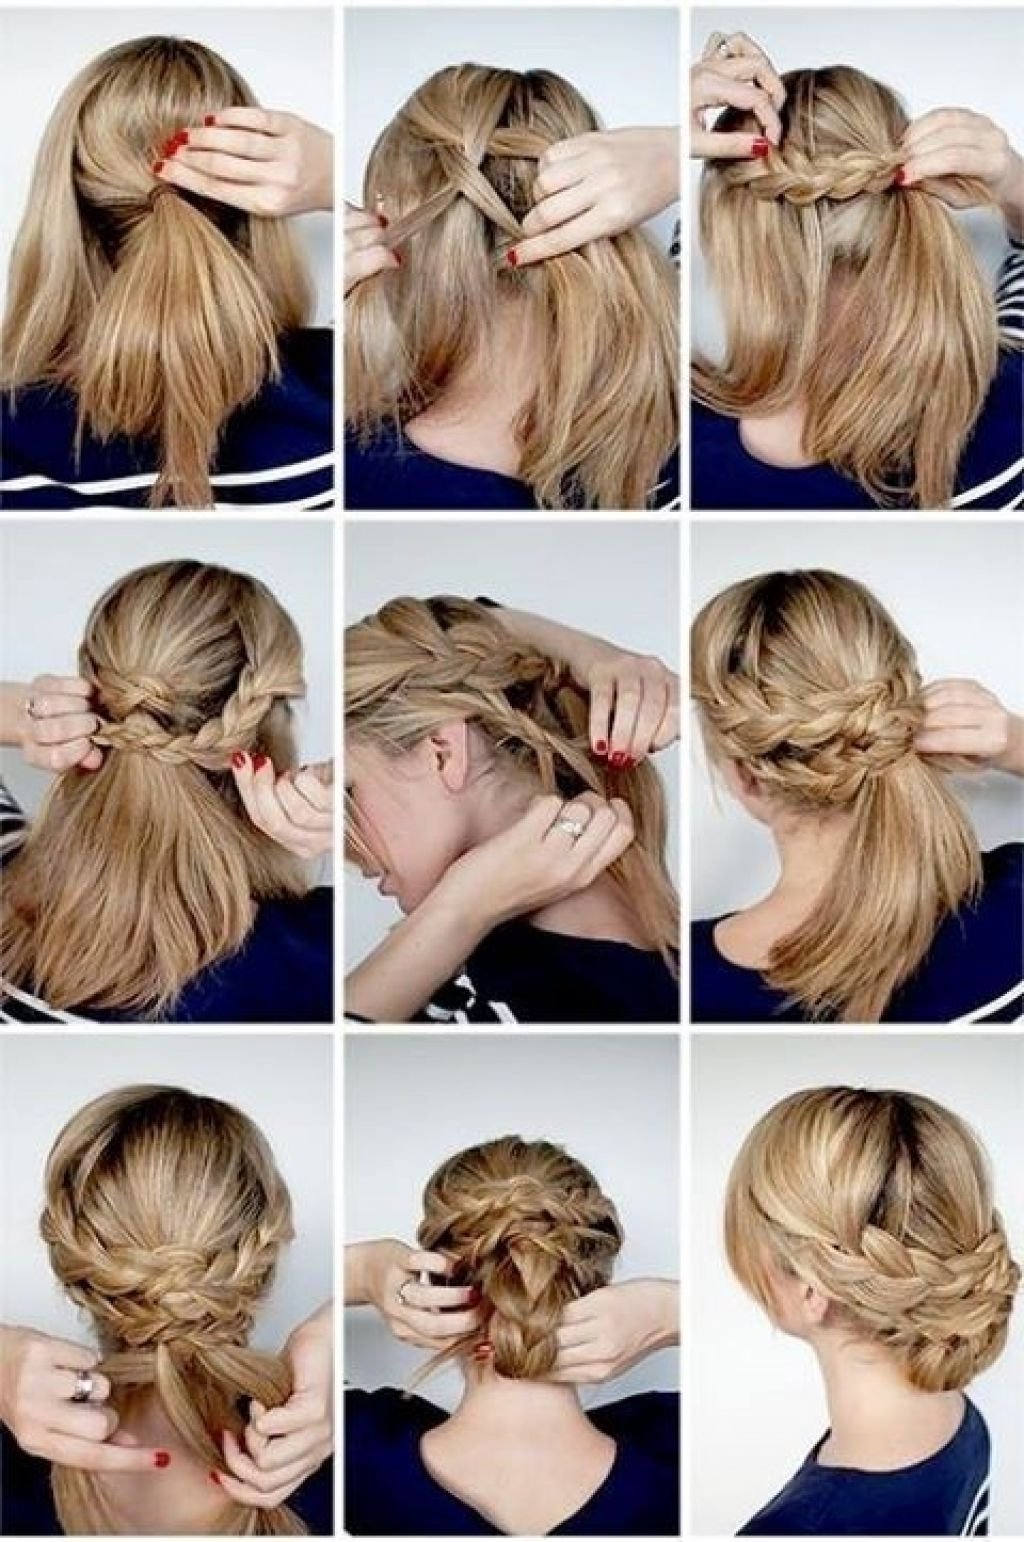 Wedding Hairstyles Tutorial Great Elegant Braided Updo Ideas – Girly Regarding Newest Wedding Updos For Long Hair With Braids (View 15 of 15)